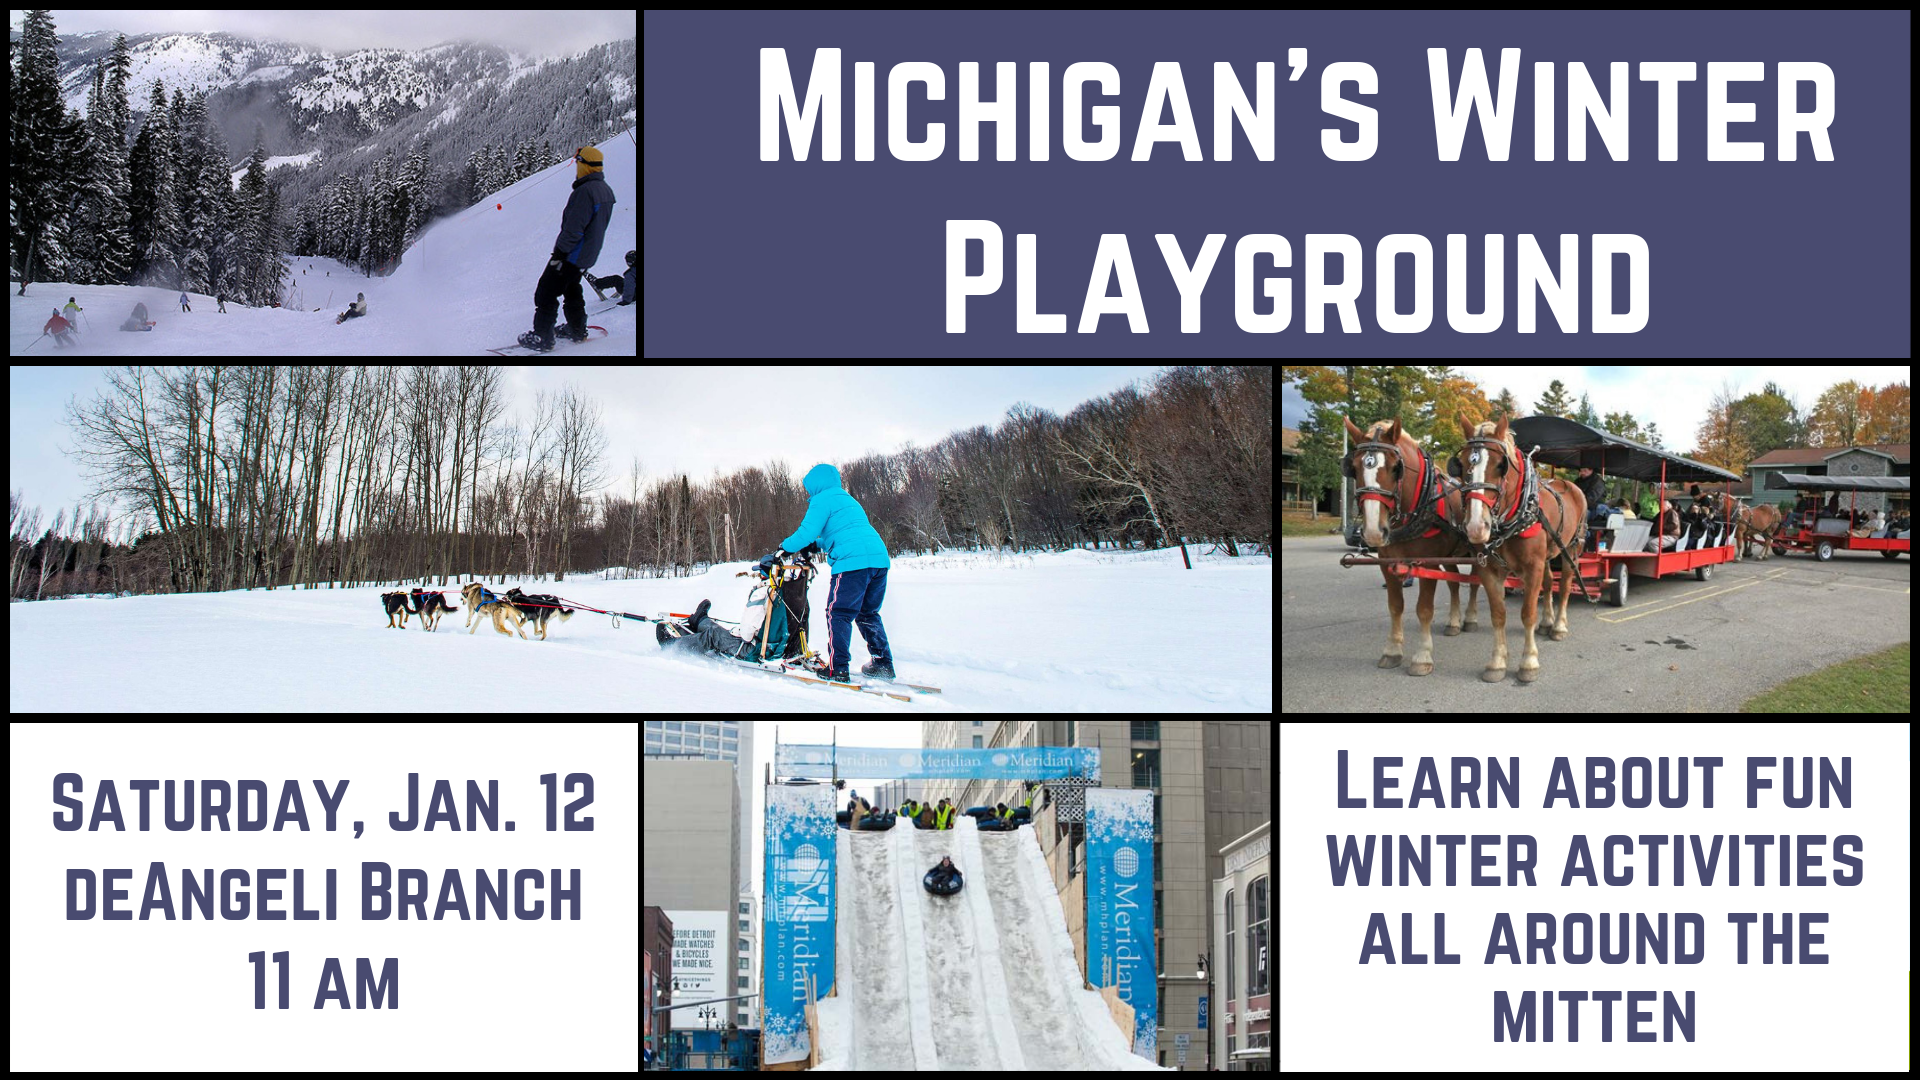 Michigan's Winter Playground